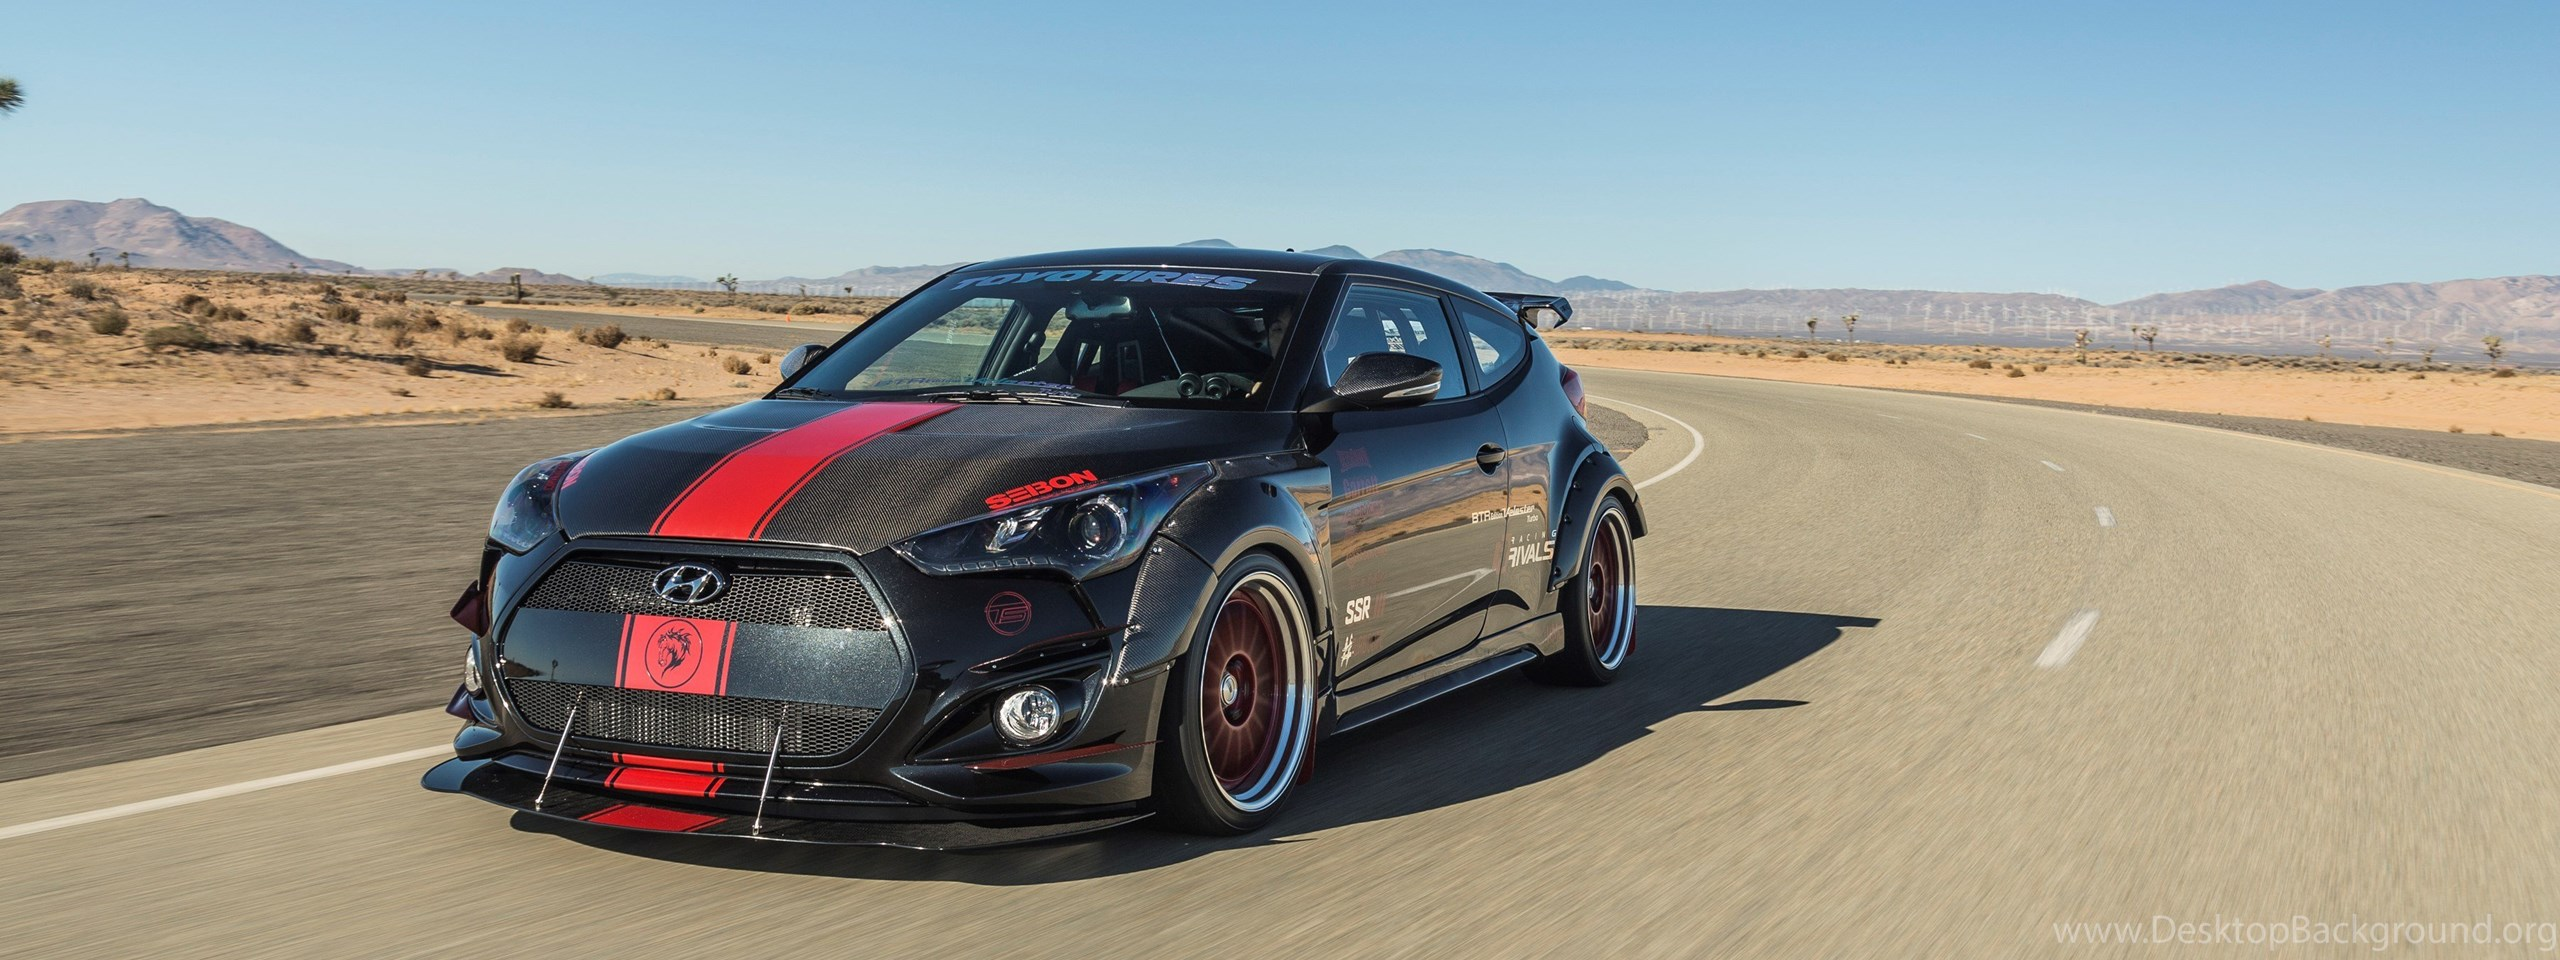 black hyundai chrome otoreview grille full otomobil img hexagonal veloster review projectors has a in end with edged hid bold large matched radiator front led the turbo spec matte and r my